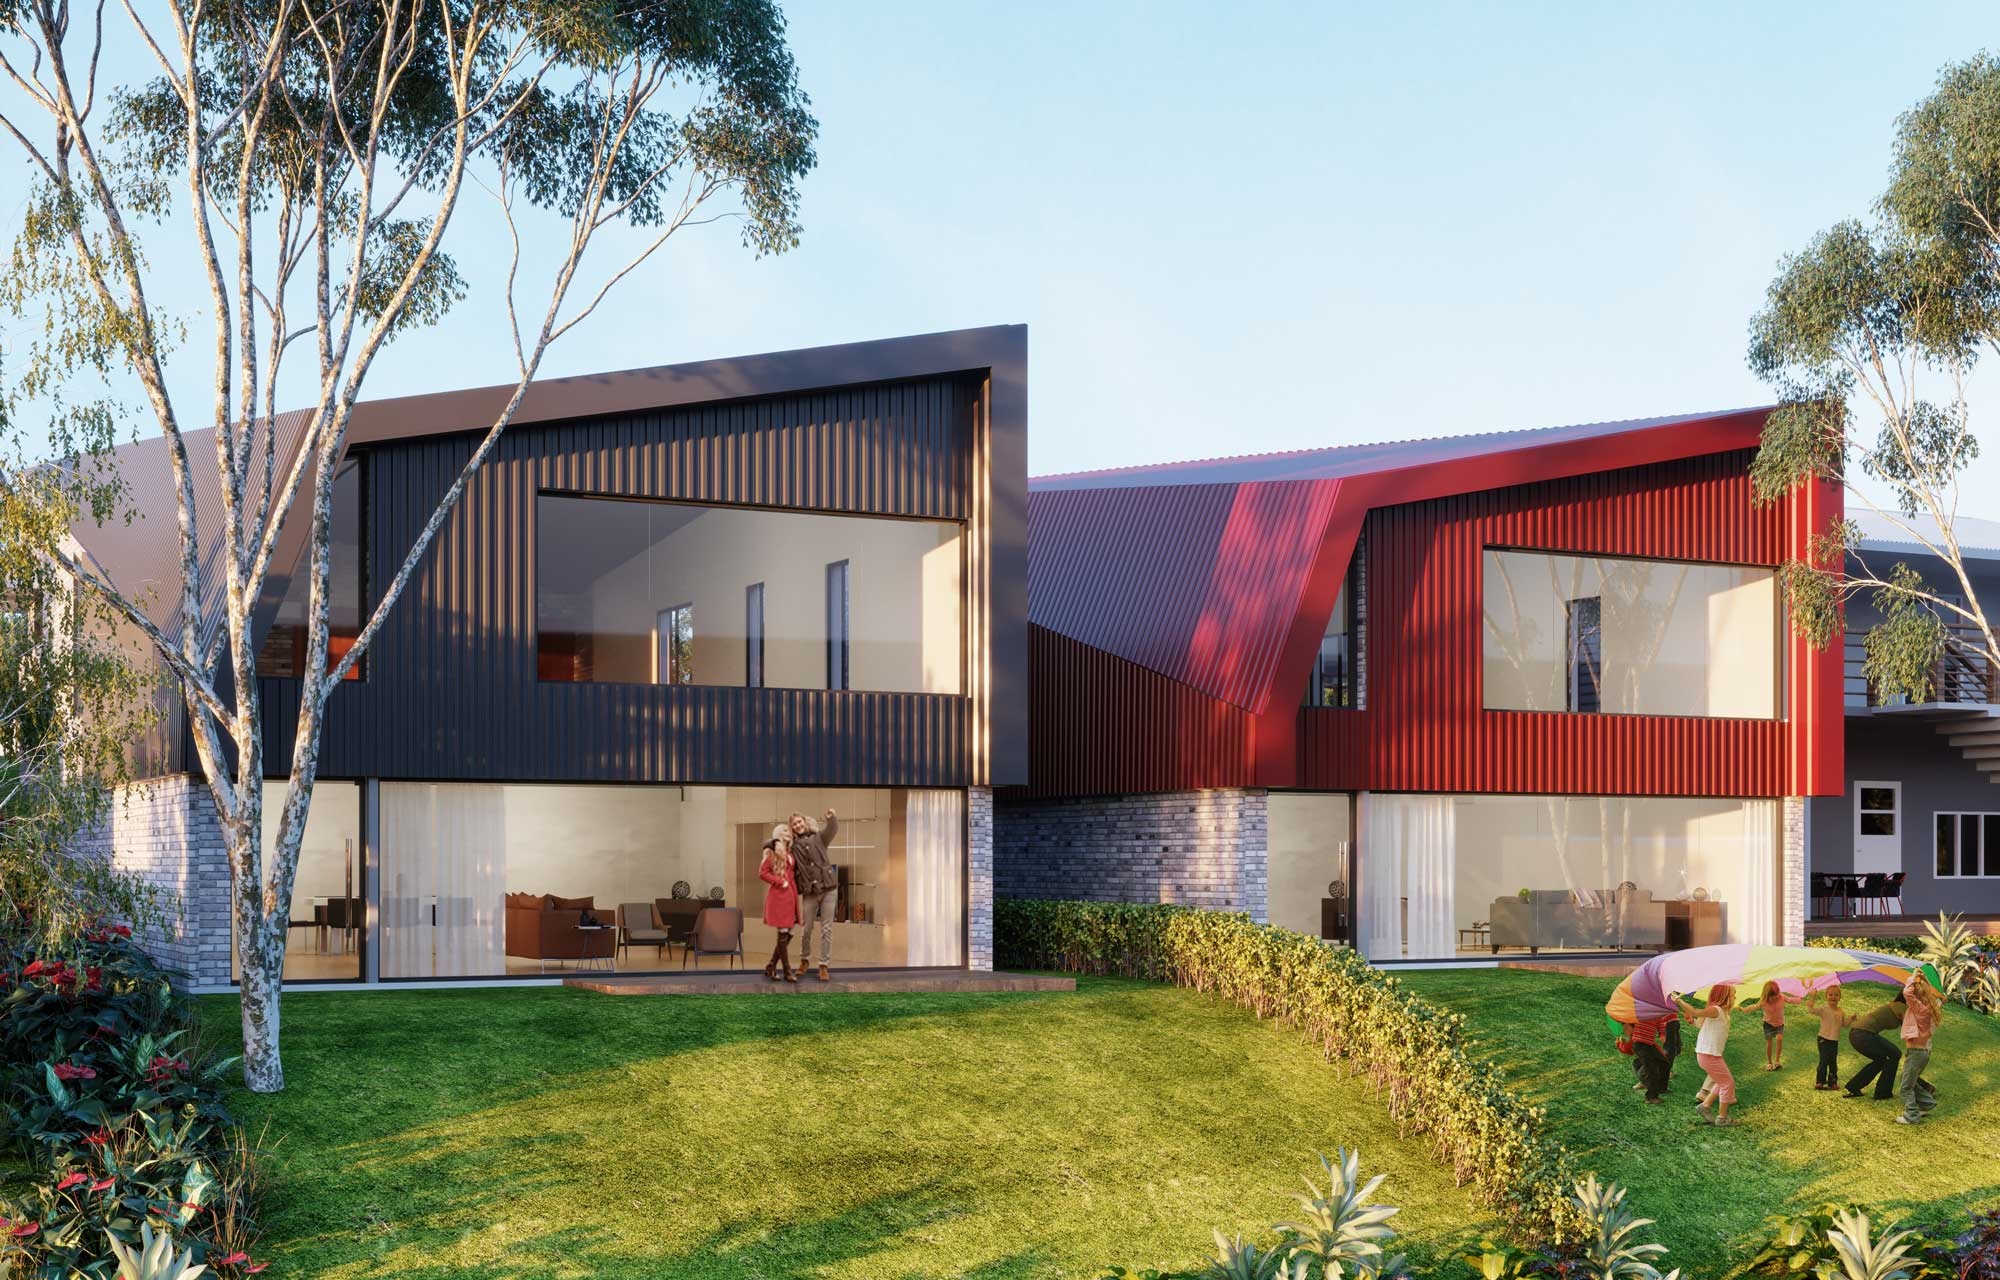 The Cascades | House and Land for Sale in Kenmore, Brisbane | Artist's Impression